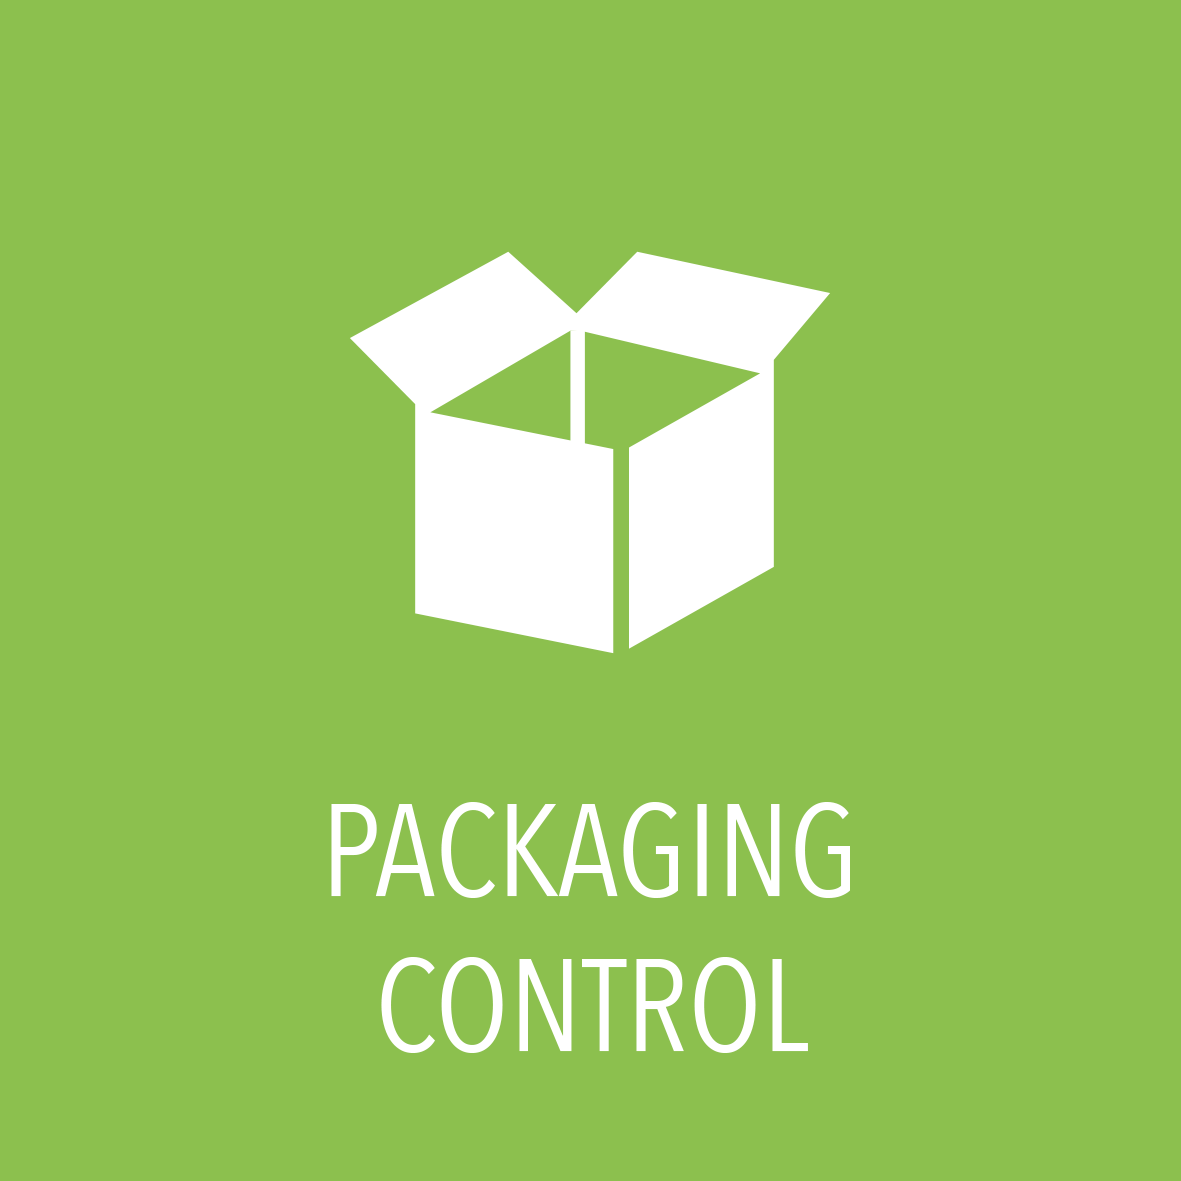 packaging control.png